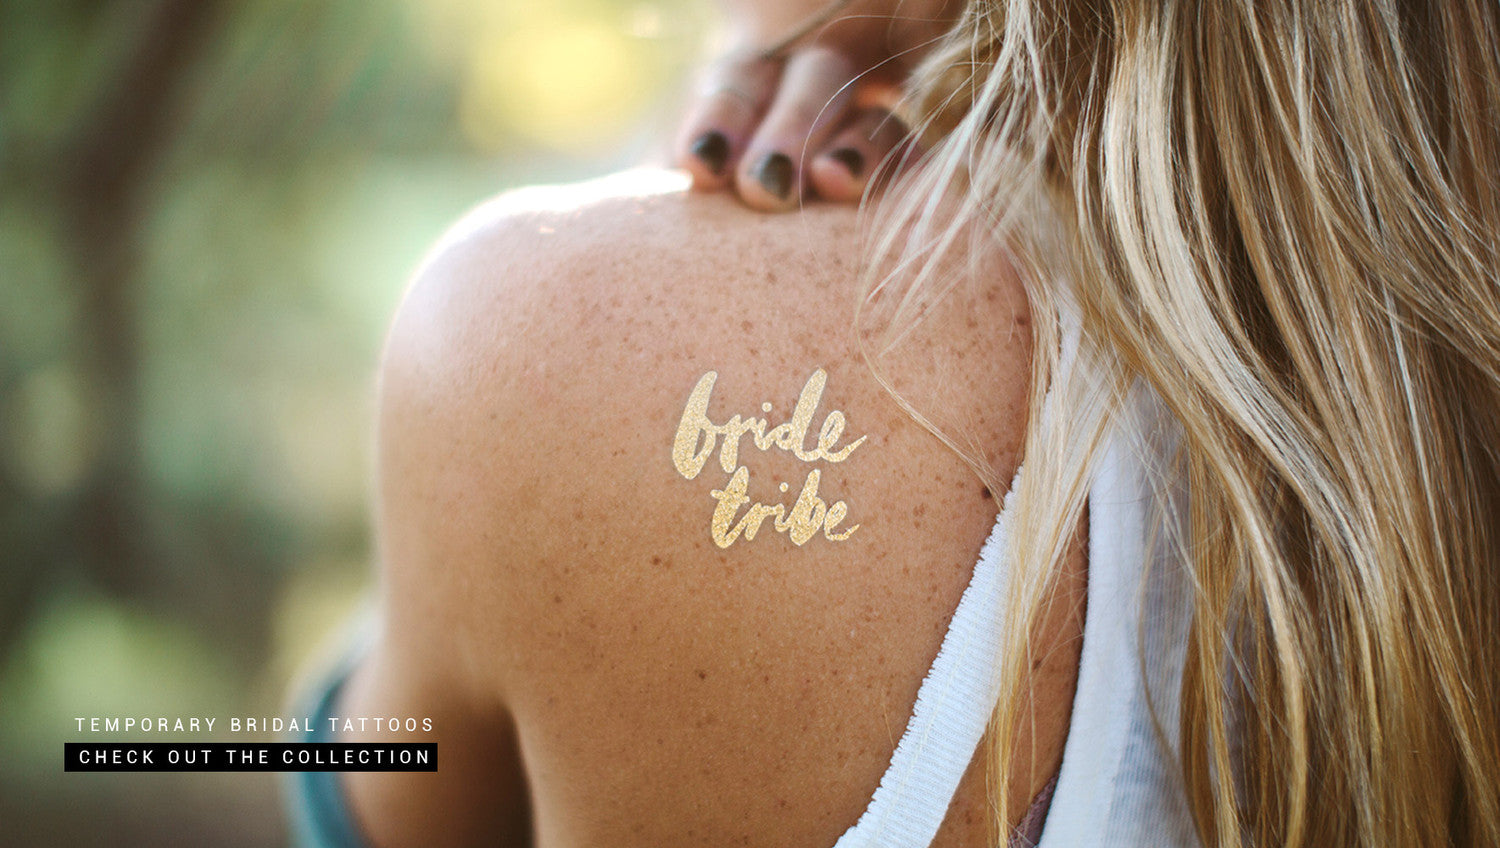 BRIDE TRIBE TATTOO